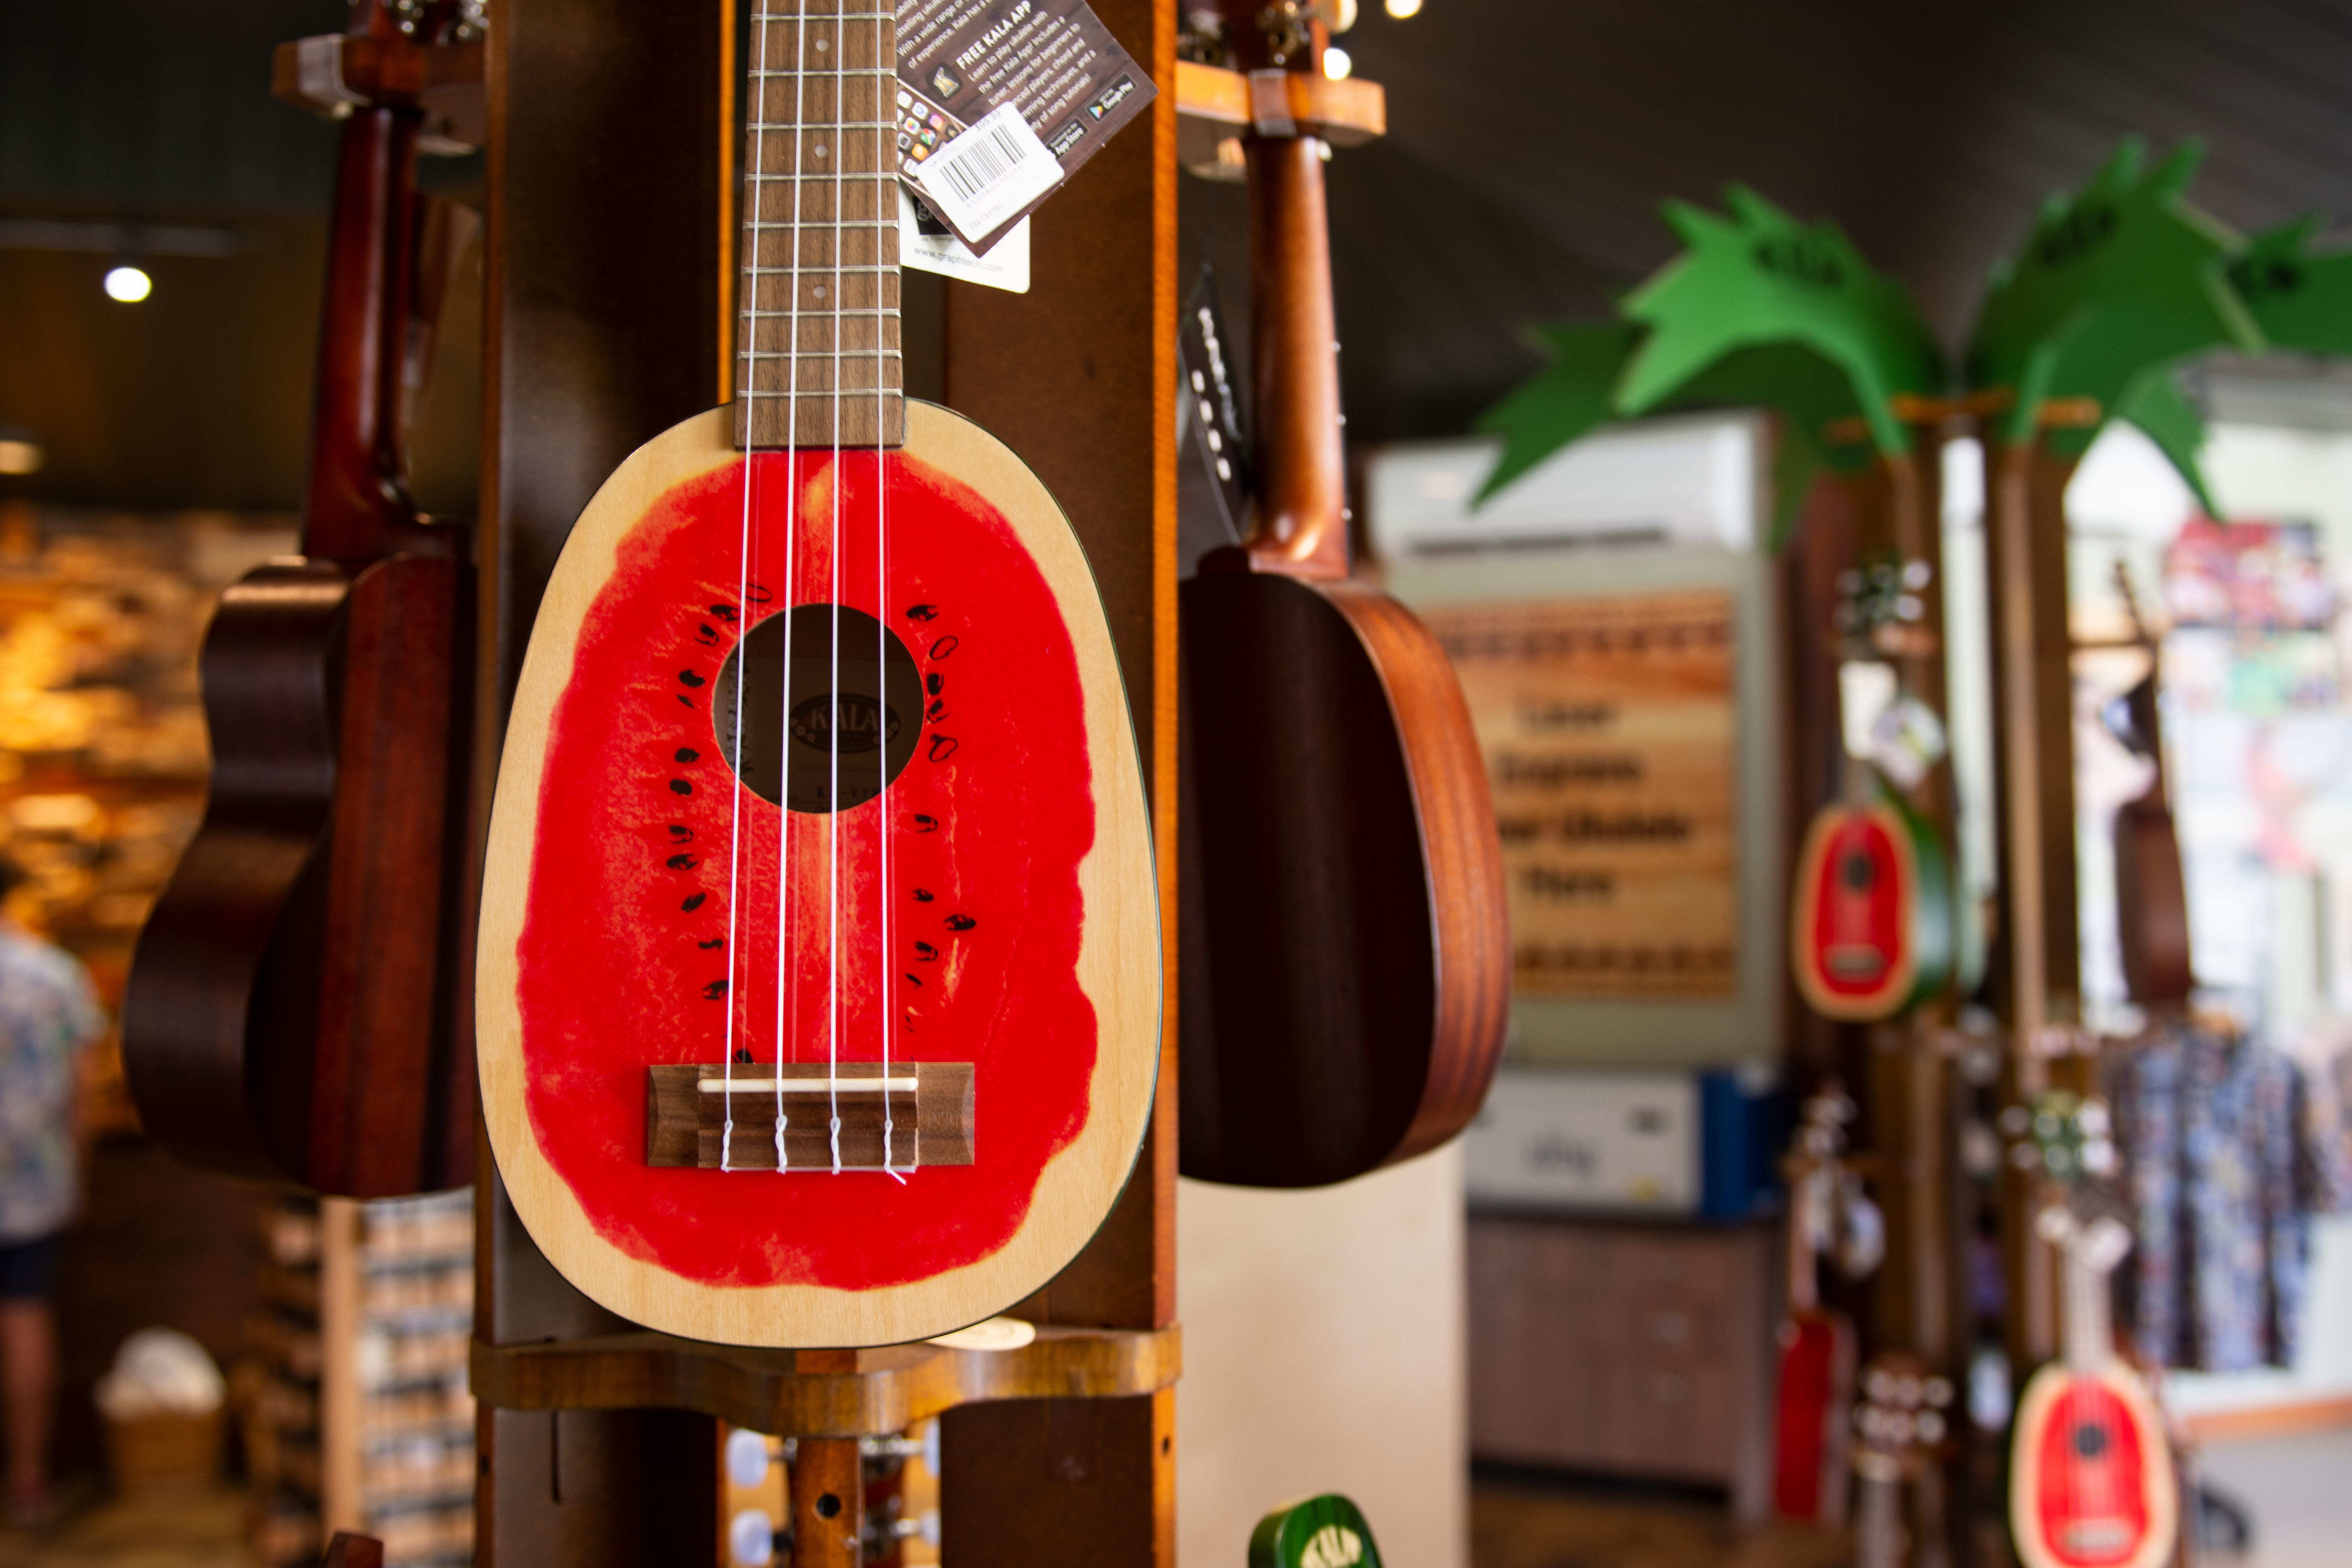 Choosing an ukulele? Here's what you need to know